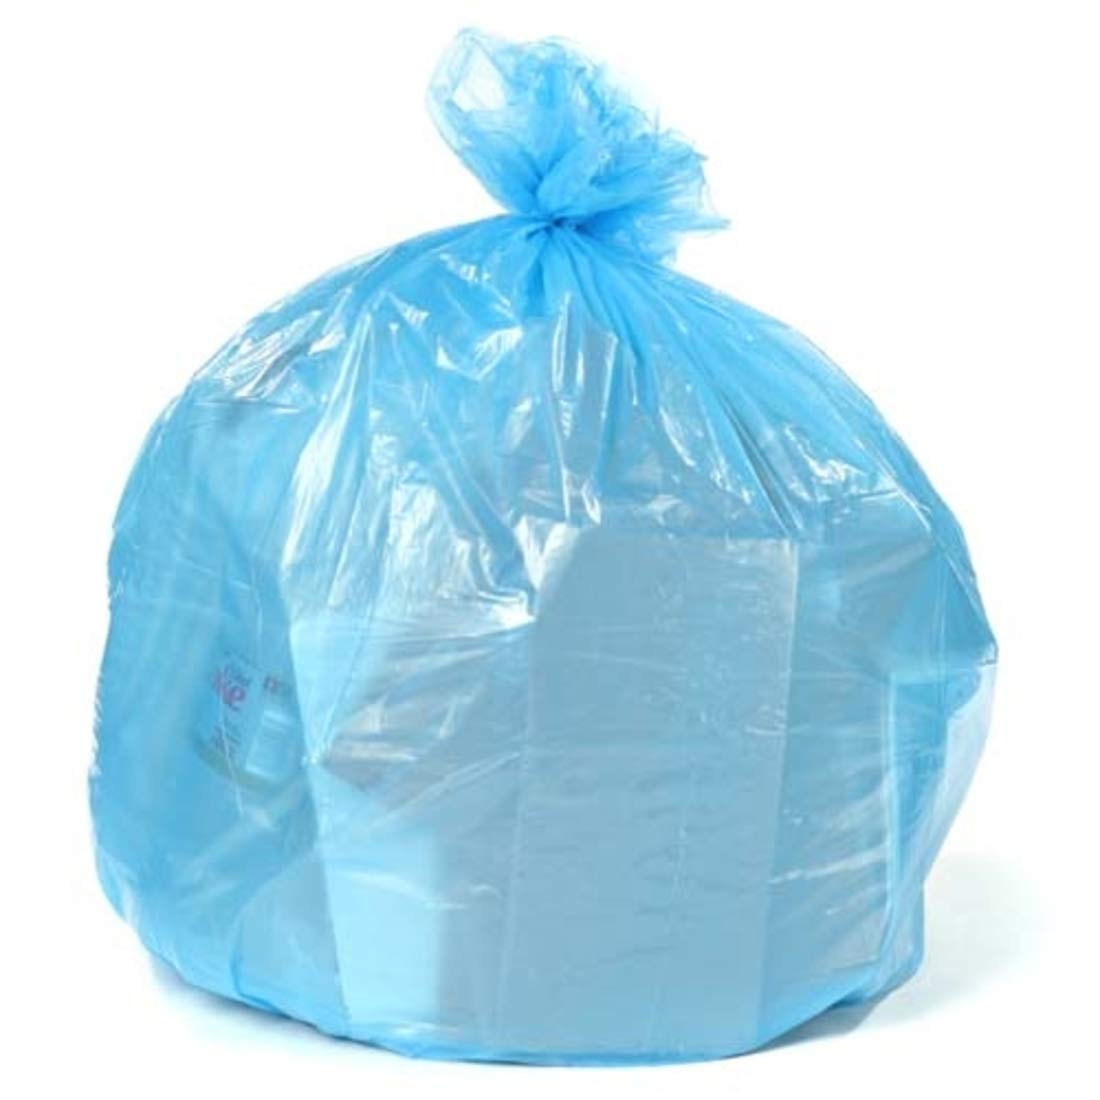 Blue Recyling Bags 38x55 55 Gallon 100/Case 1.2 Mil H-RBL55 by Plasticplace